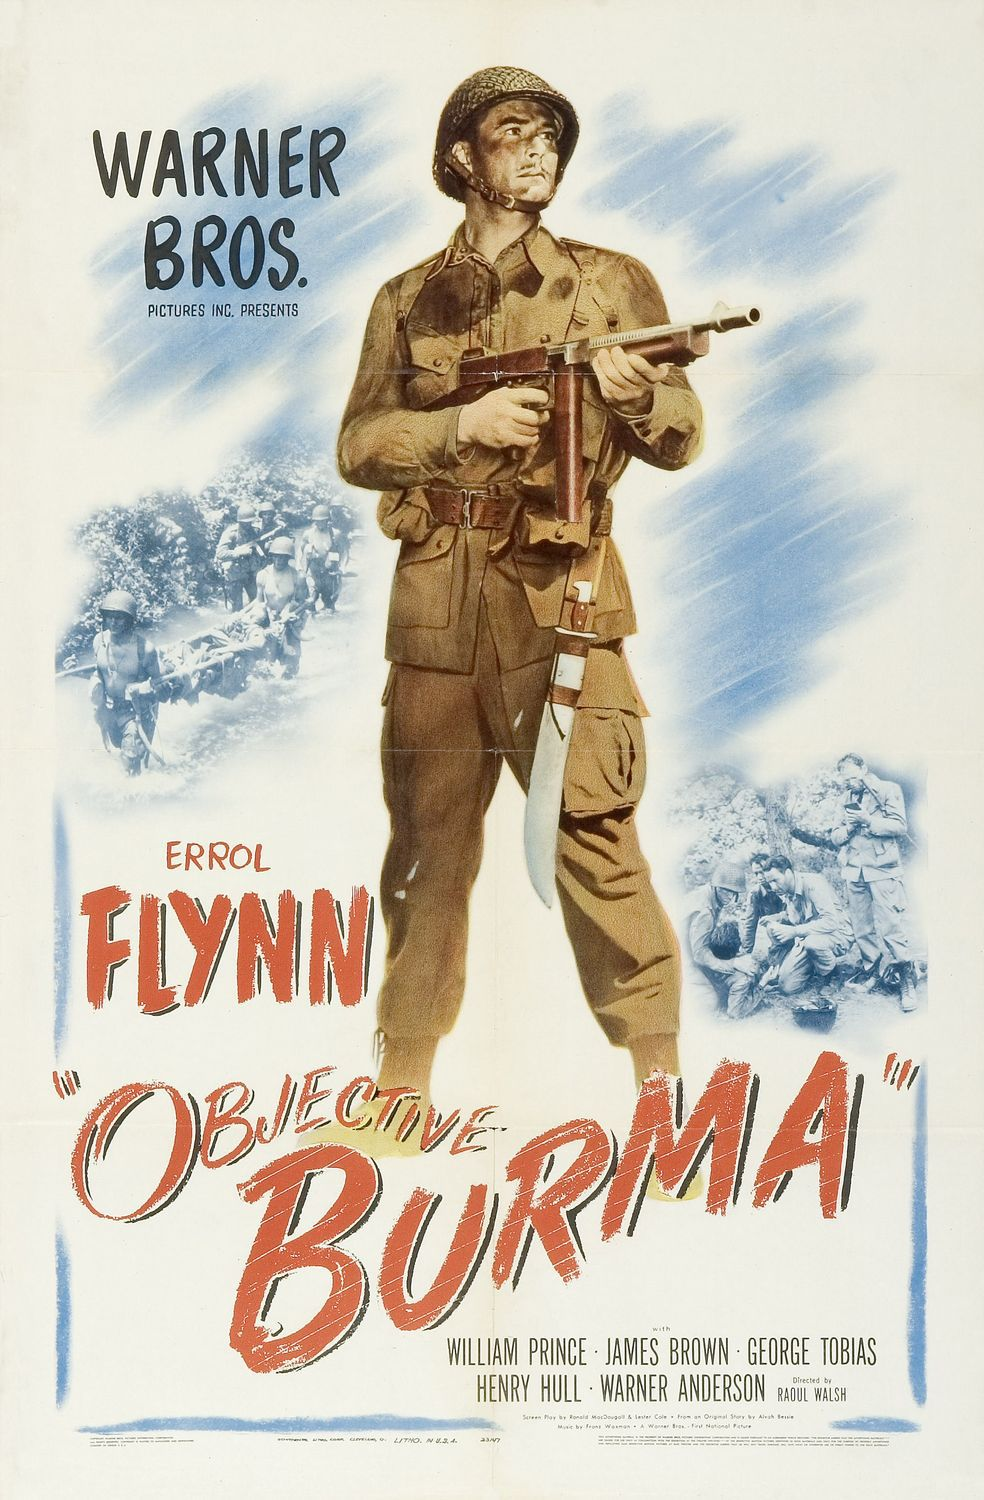 Objective Burma (1945) - war battle film poster 40s